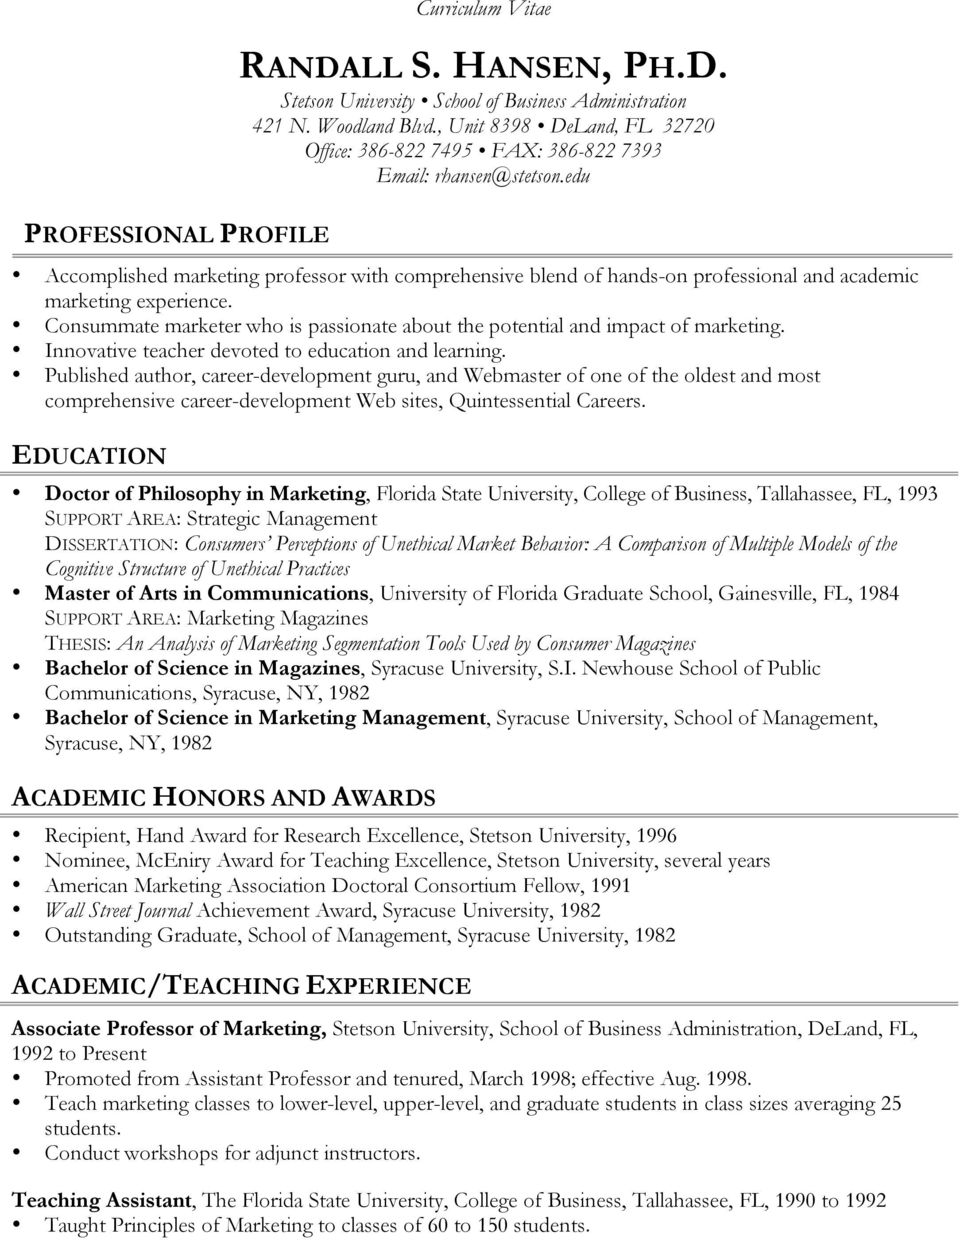 edu Accomplished marketing professor with comprehensive blend of hands-on professional and academic marketing experience.